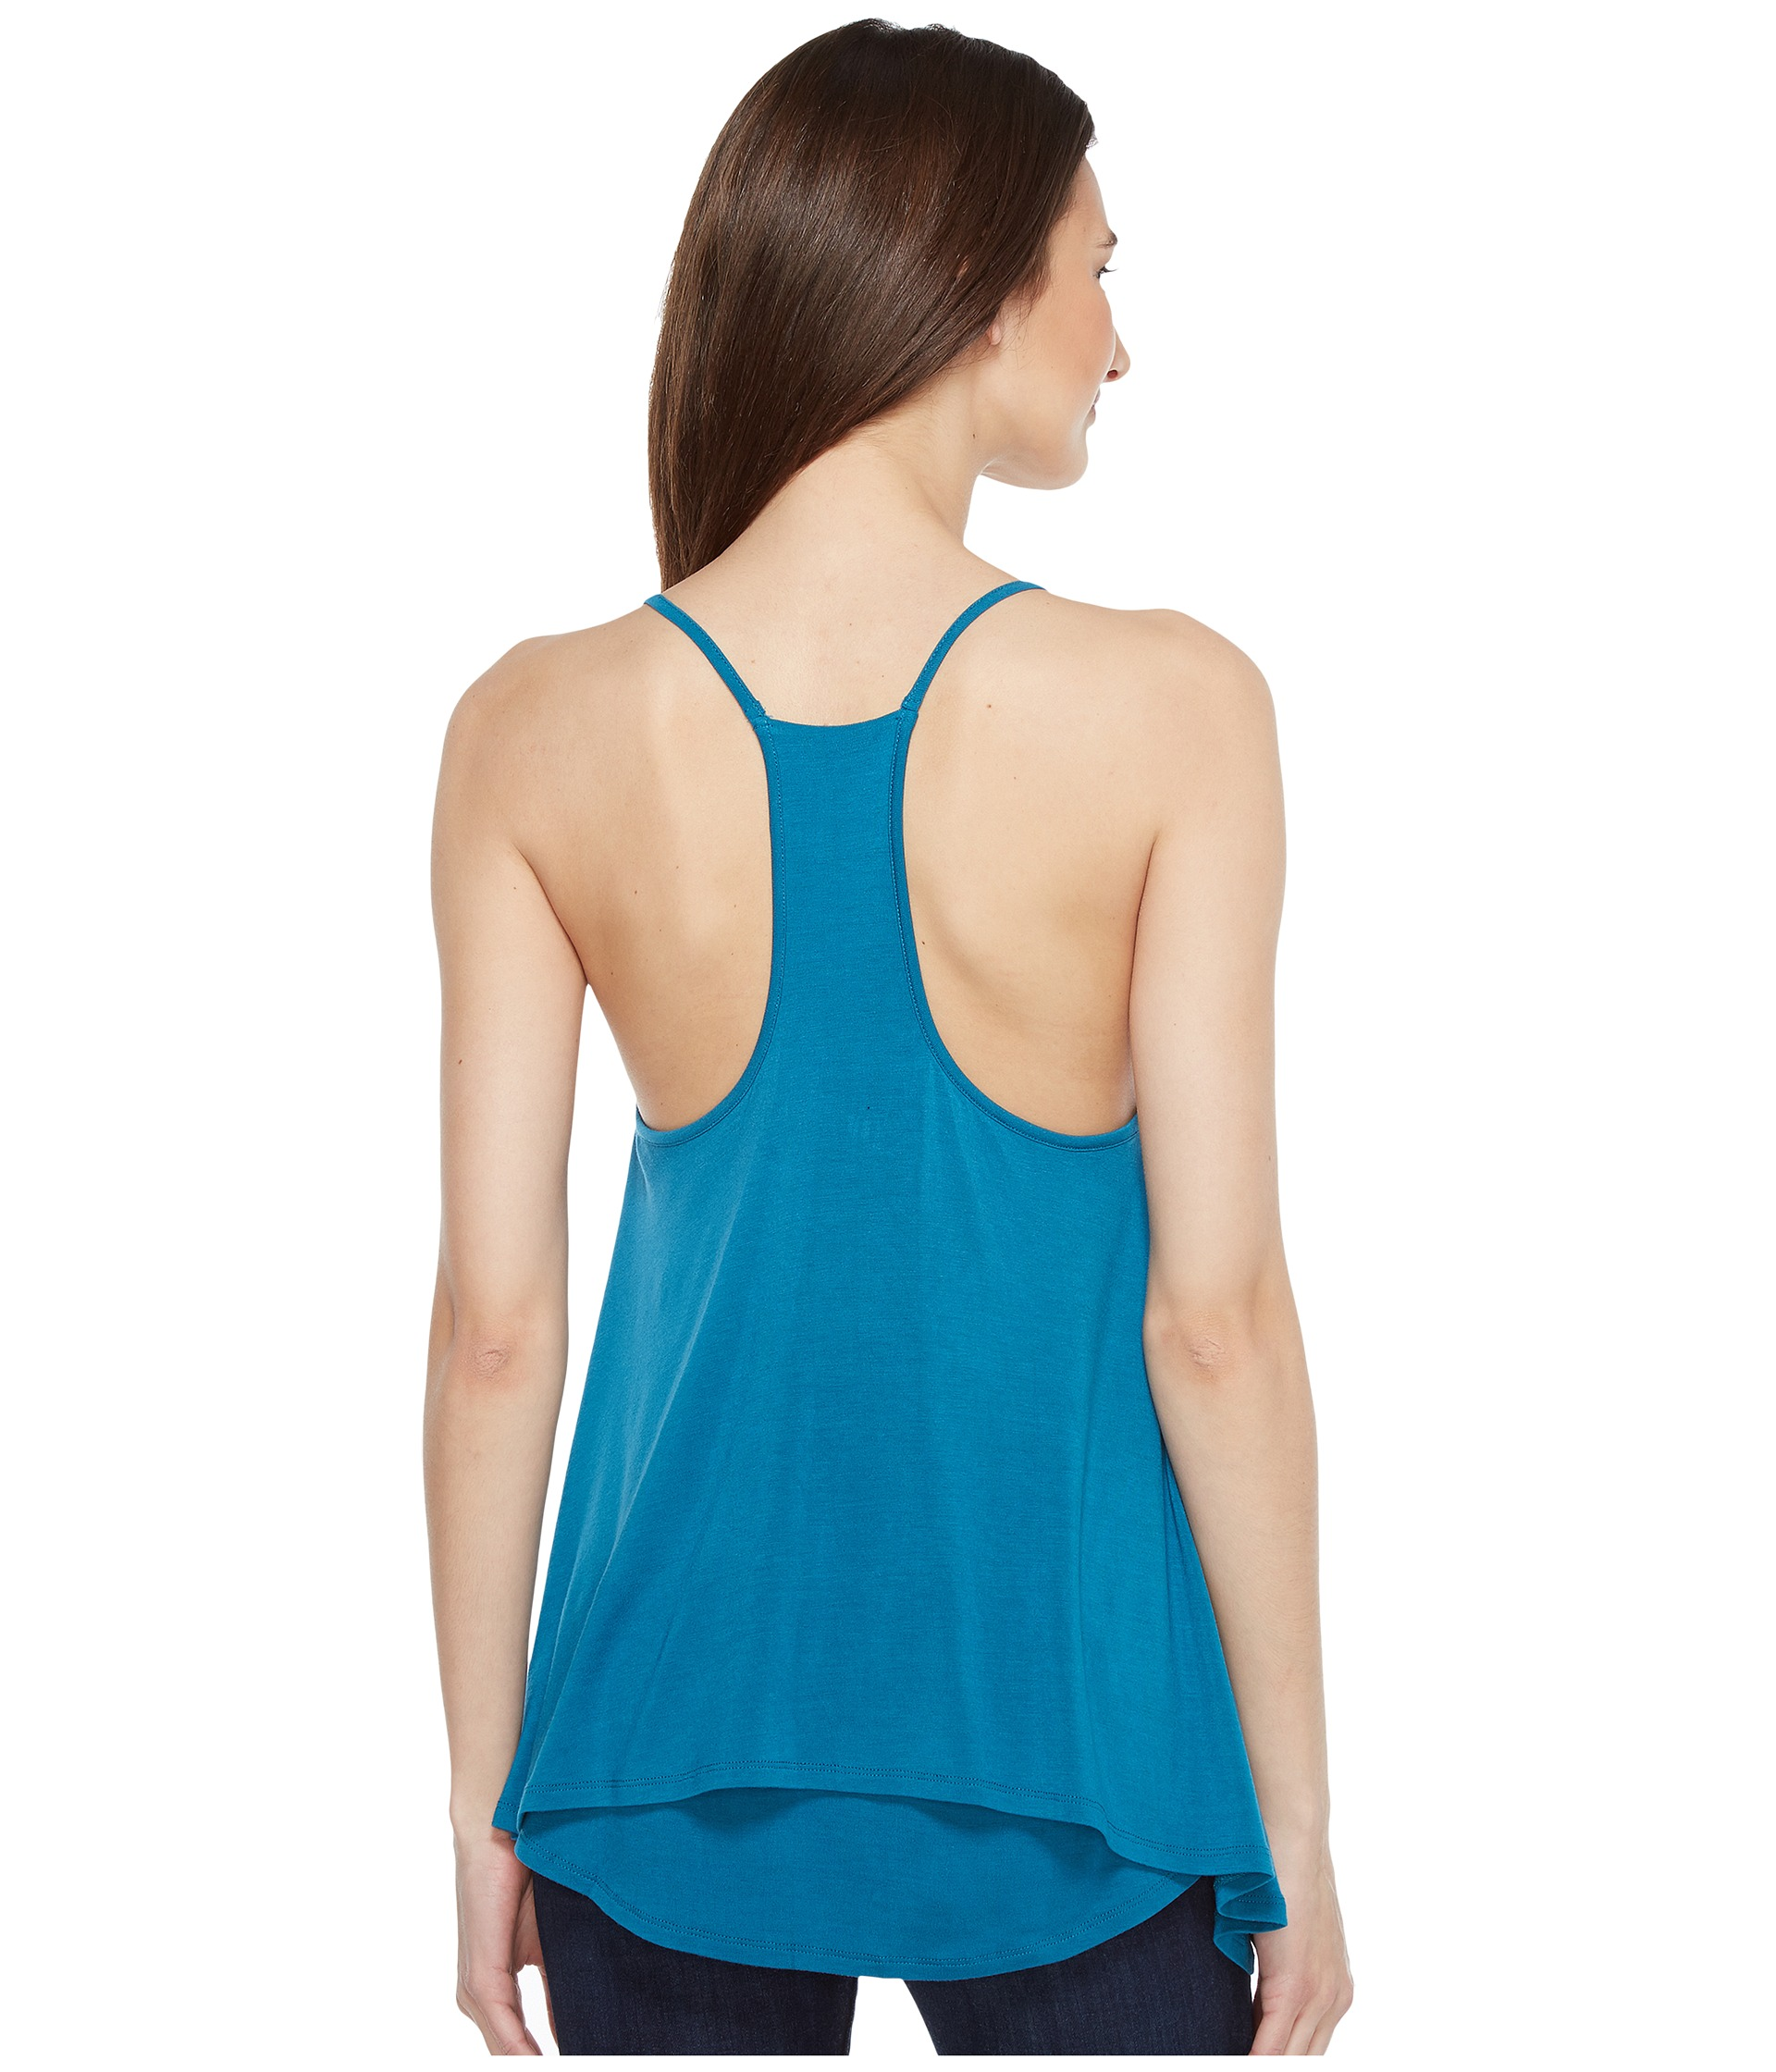 This support tank provides tummy & fatigue-relieving back support while reducing the waistline without compressing the chest area. From the Core fibers of 32% DuPont Lycra® spandex and 22% DuPont Antron® nylon wrapped with 42% pure cotton, this fabric stretches four ways, providing you with the best fit and compression in total comfort.